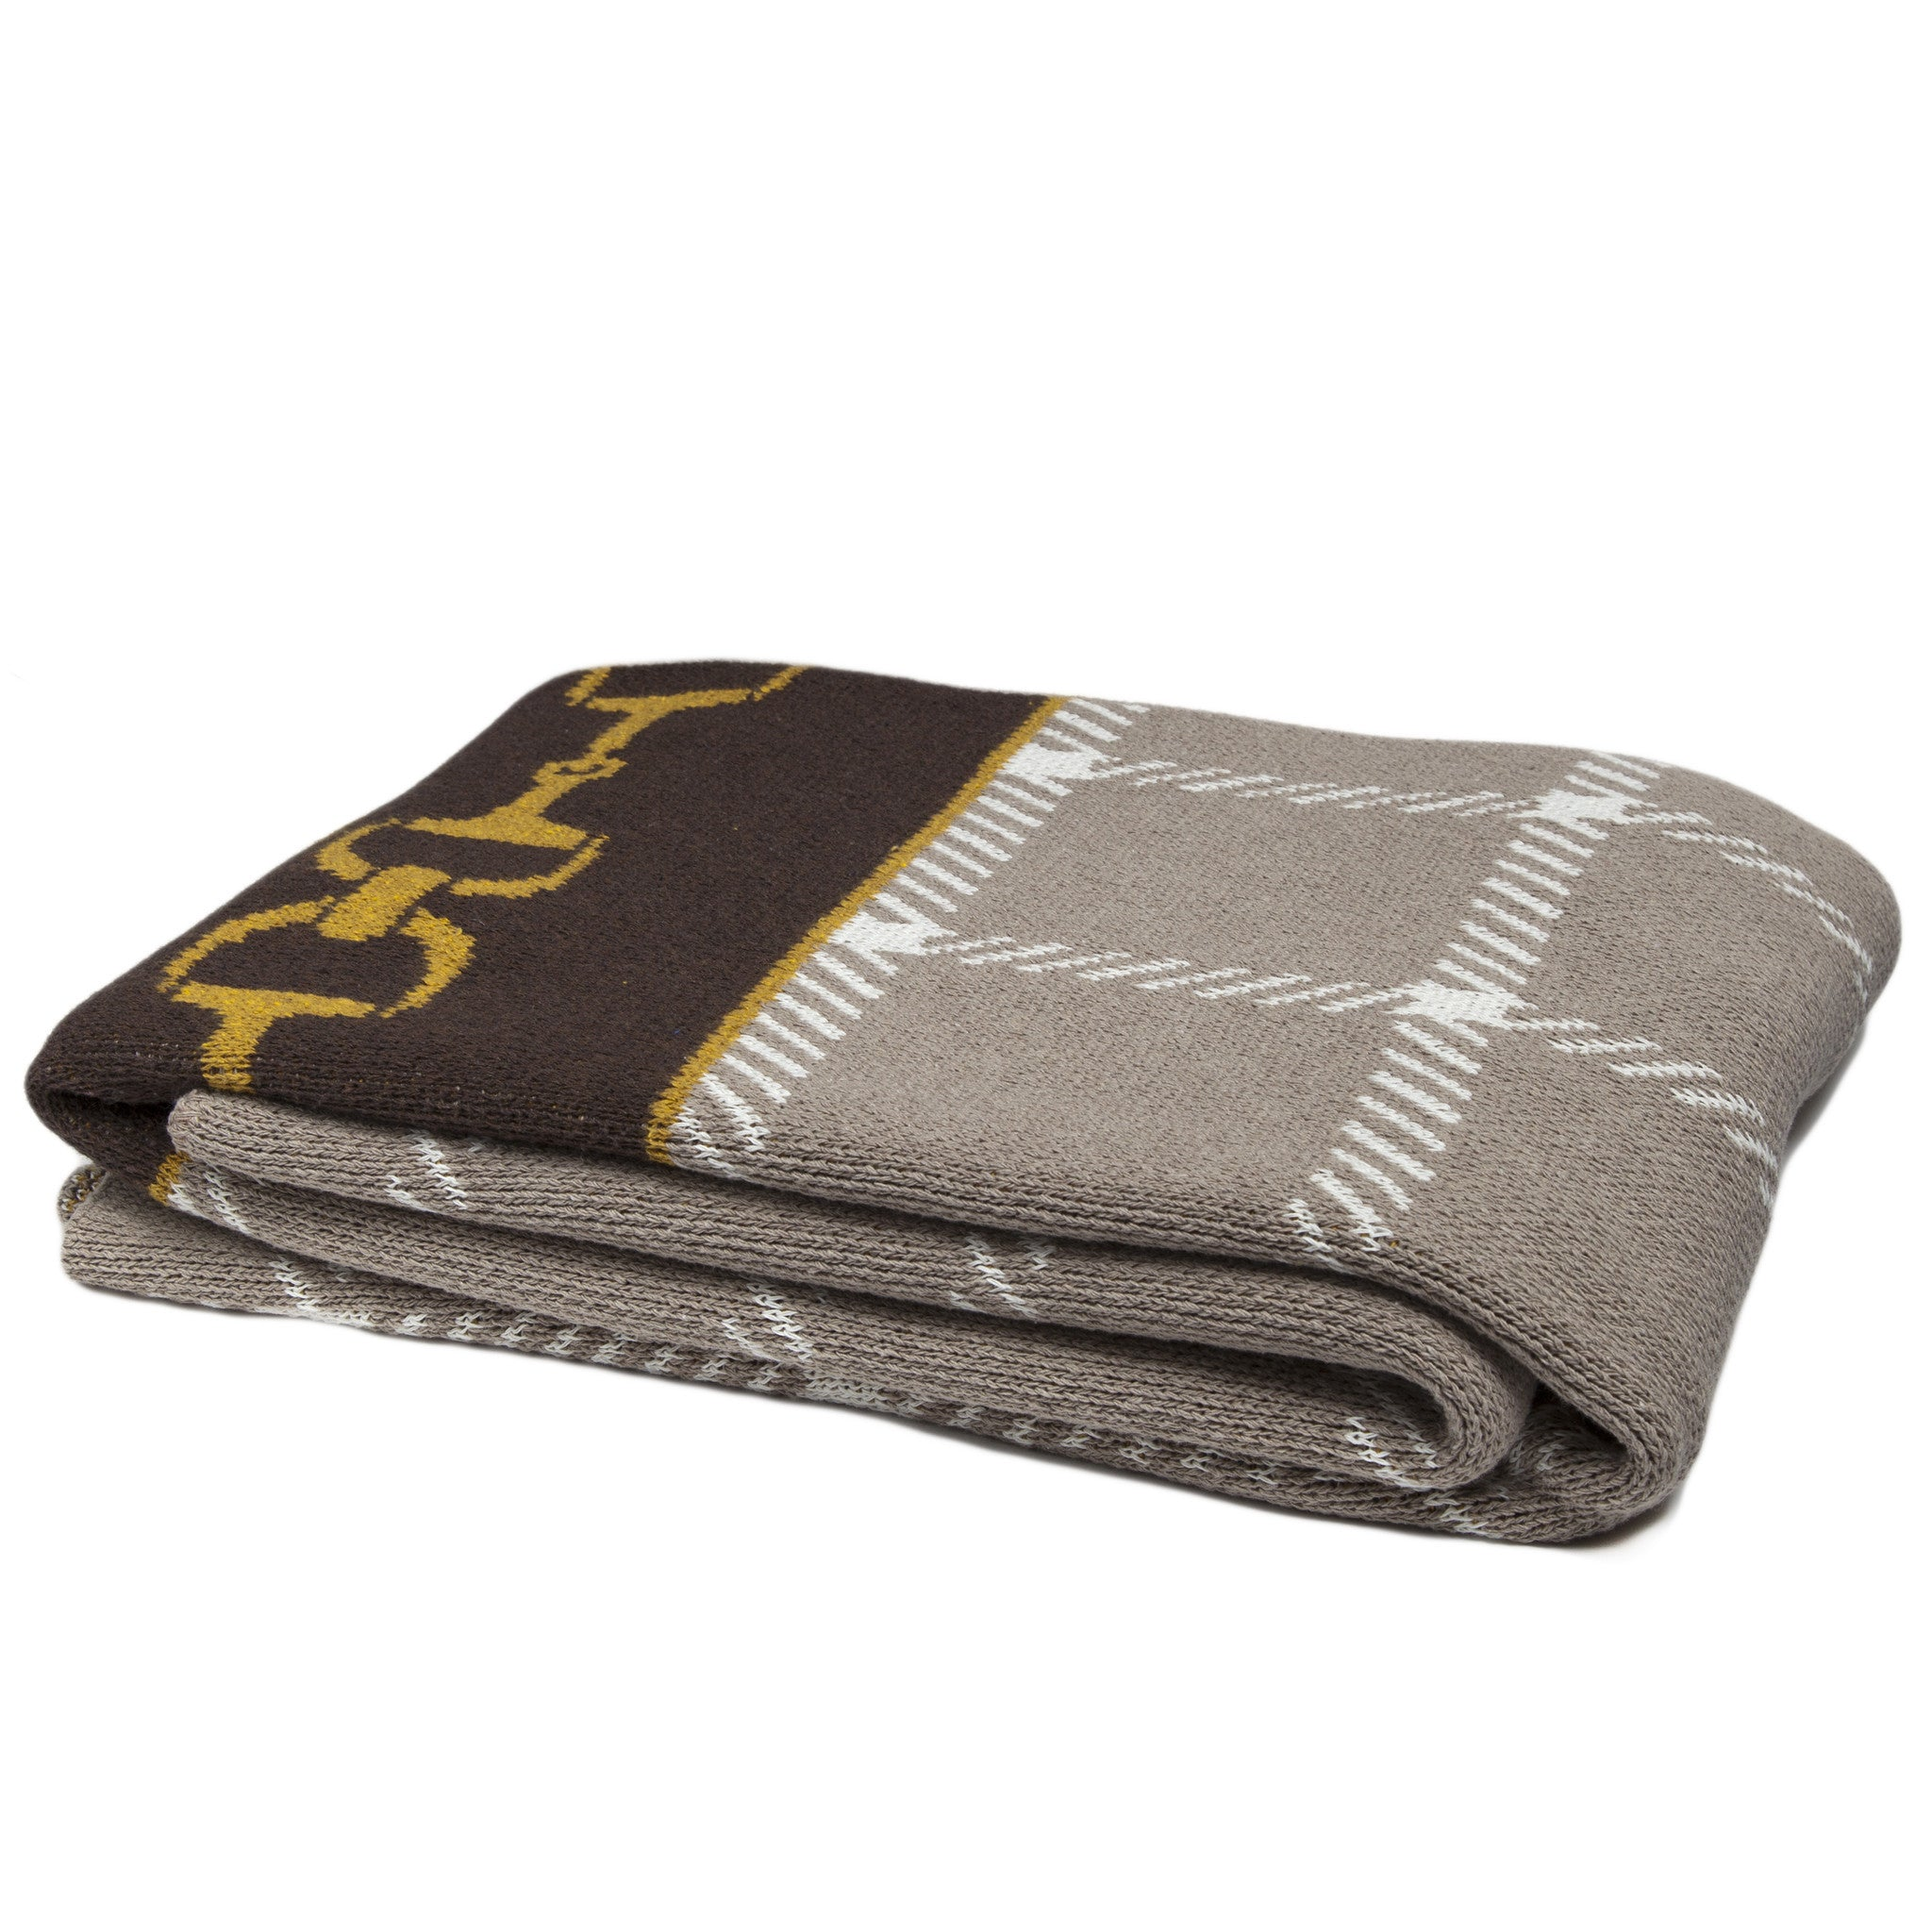 Eco Horse Bit Plaid Throw Chocolate/Moss/Flax